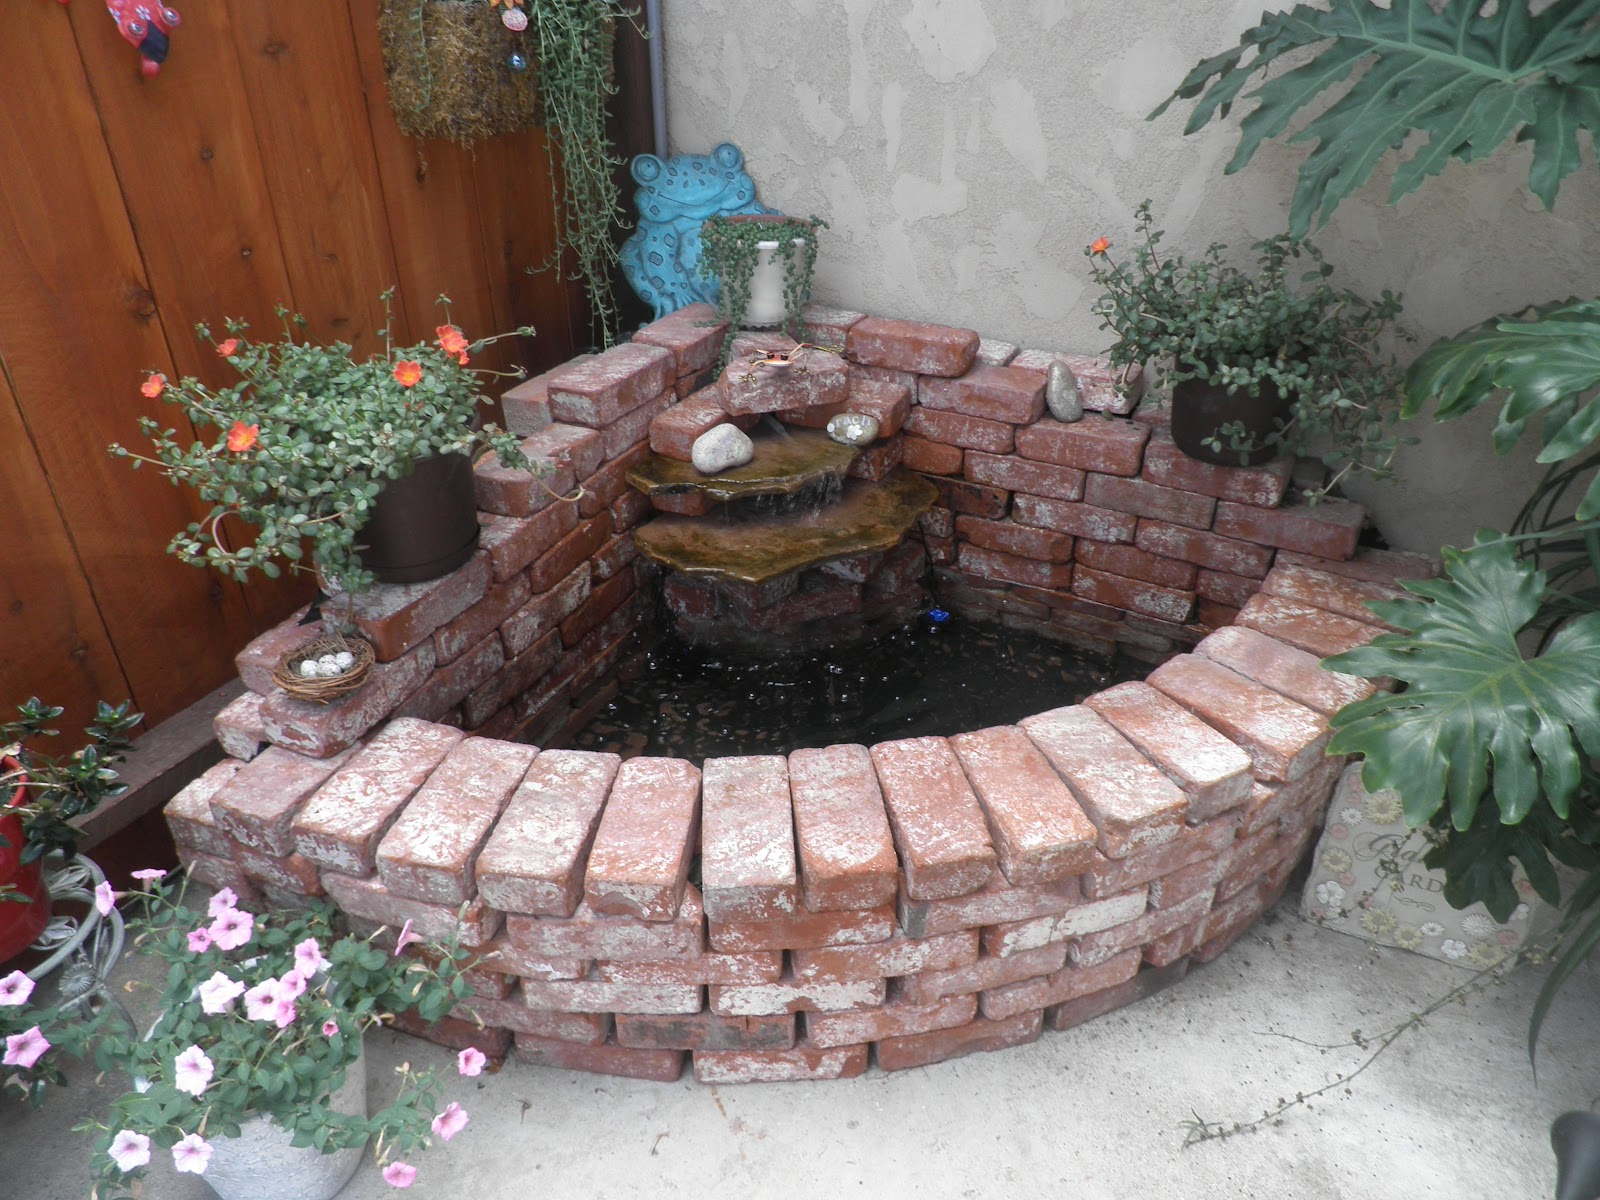 Stringbeadz Designs How To Build Your Own Brick Waterfall